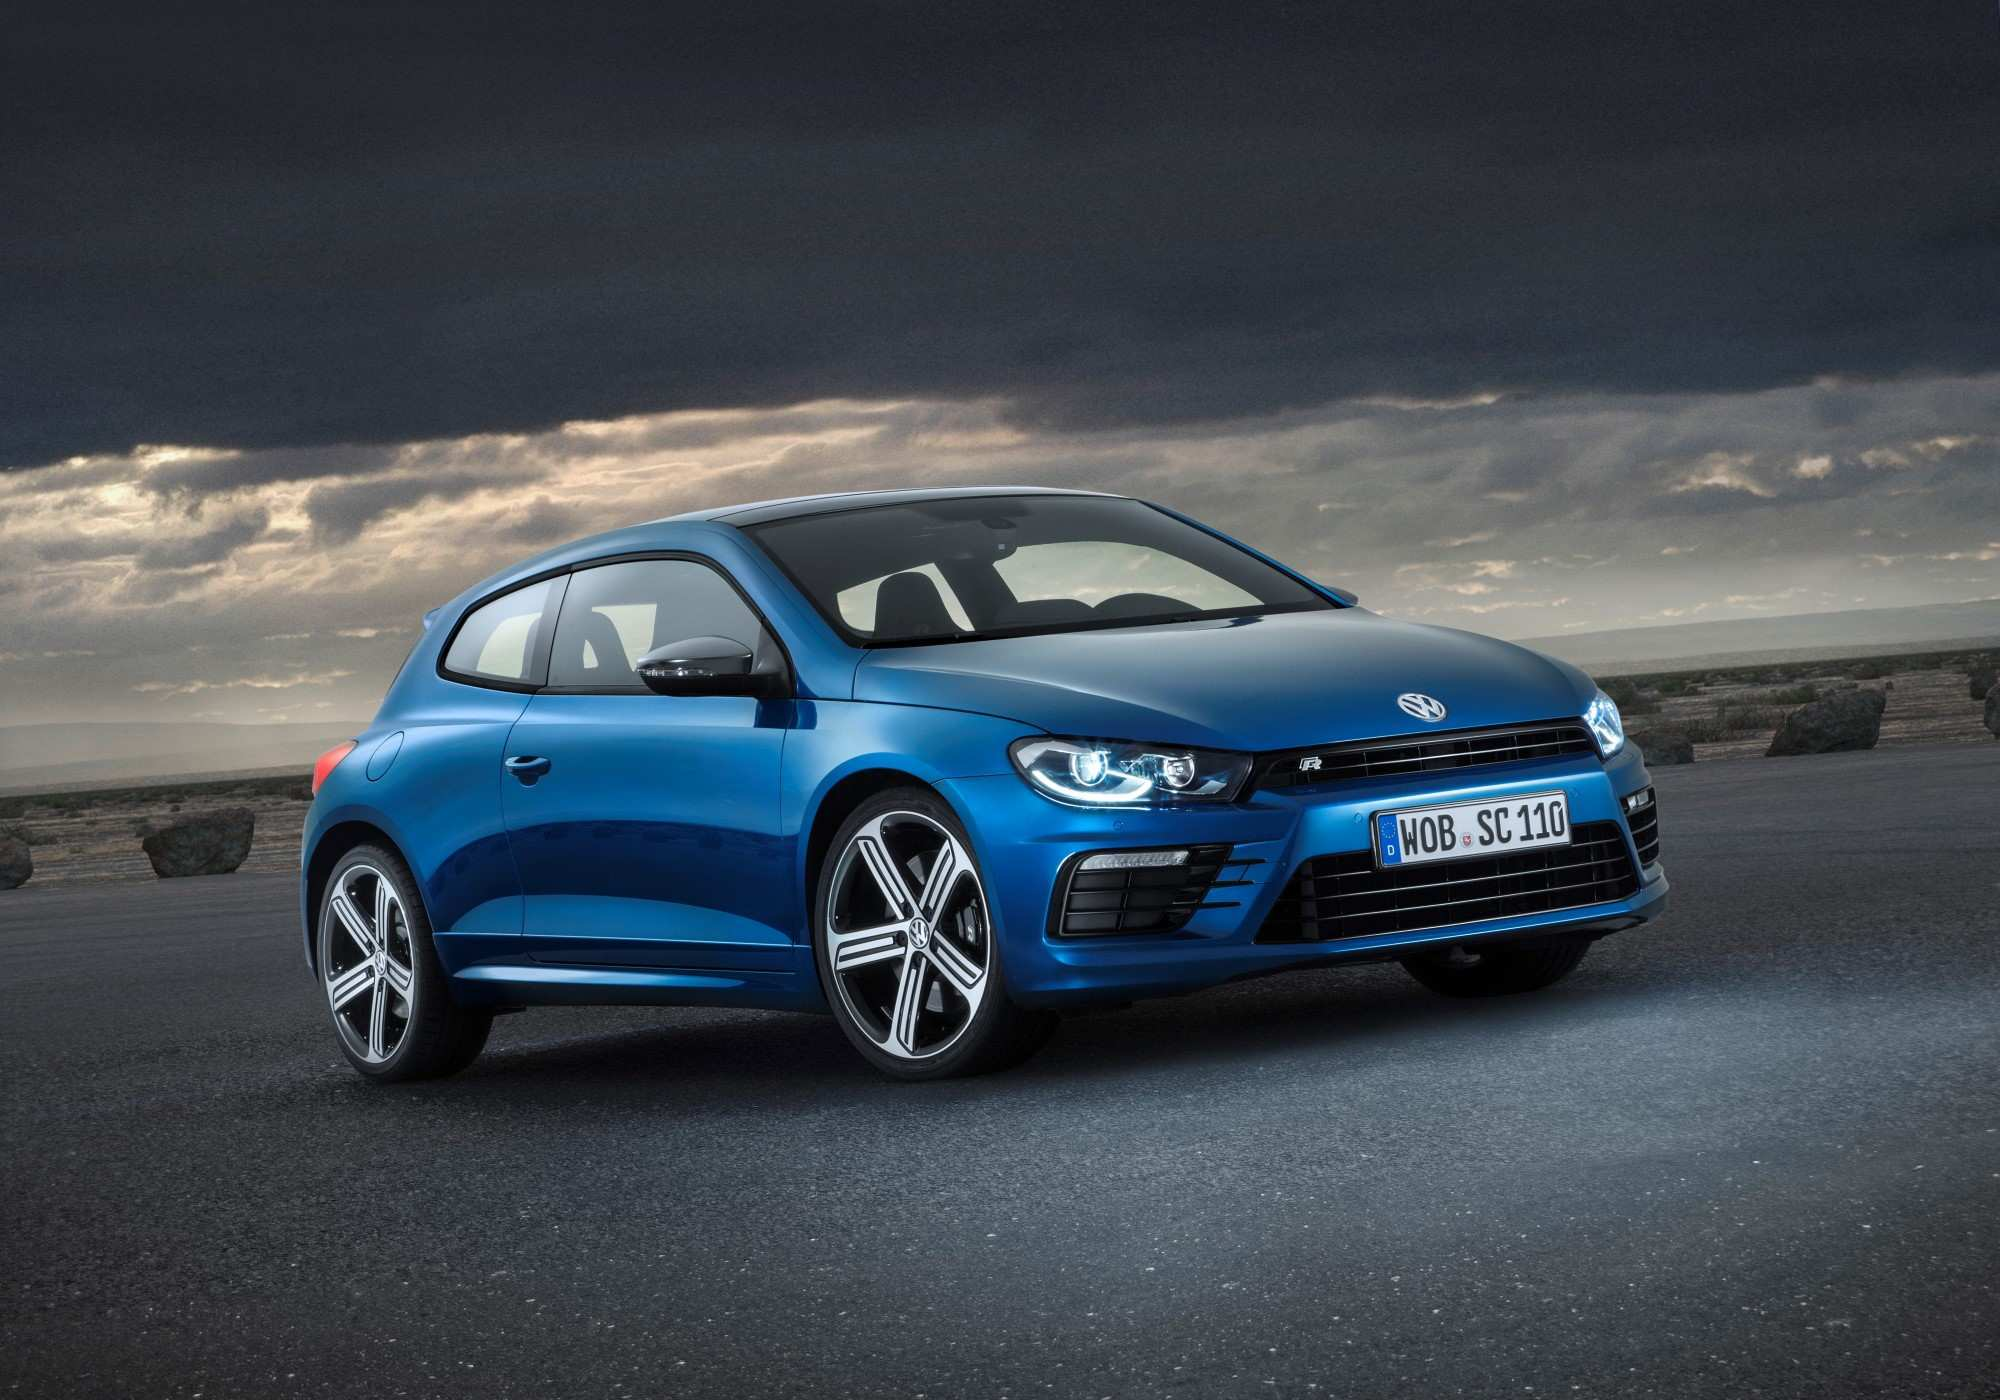 59 All New 2019 Volkswagen Scirocco Specs And Review